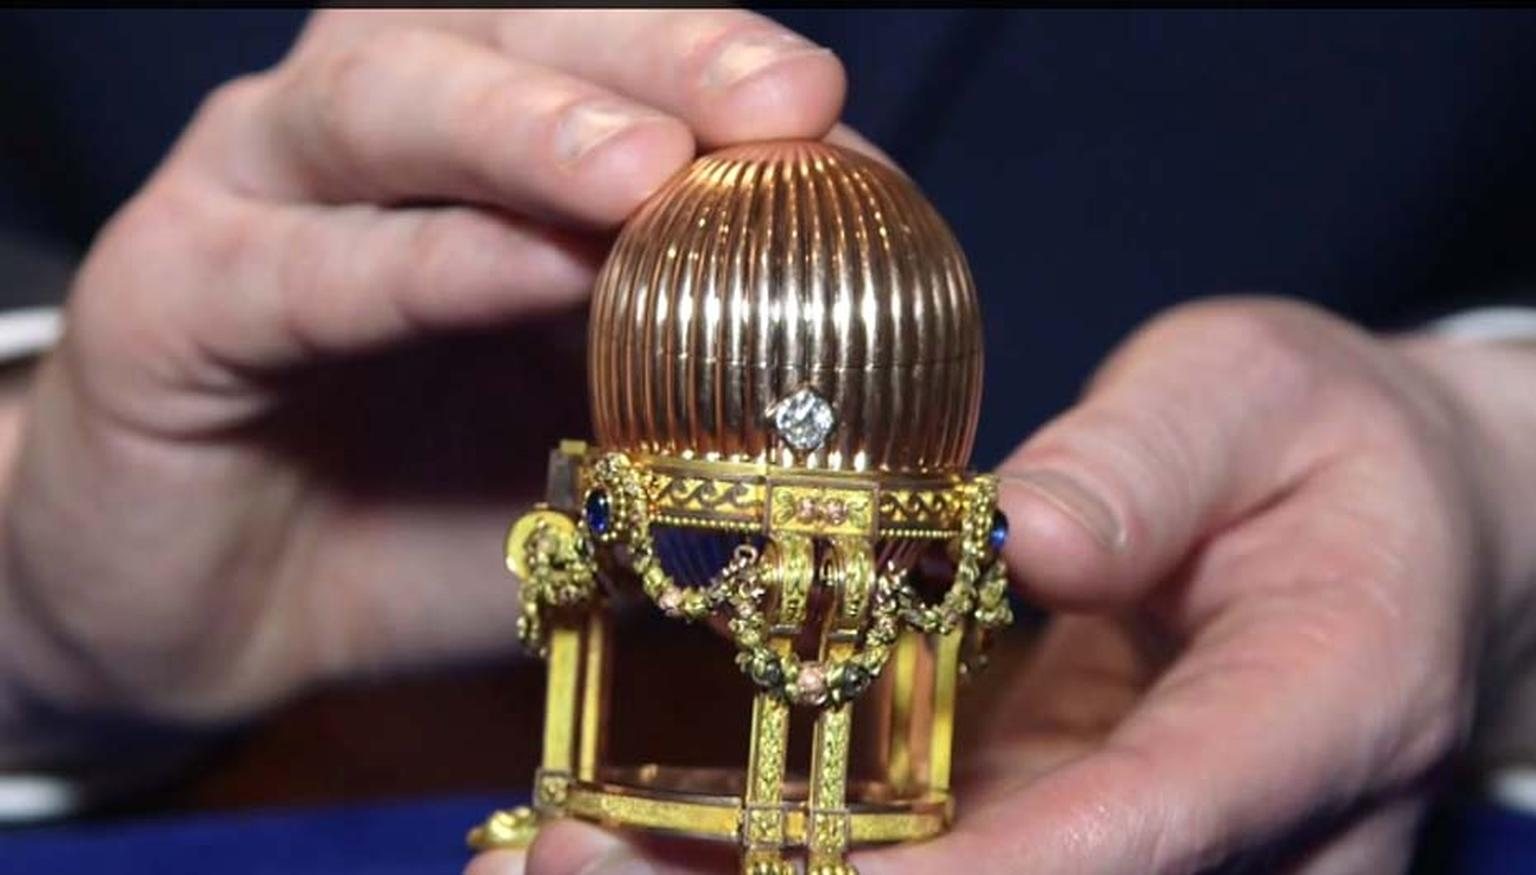 Shaped as a hen's egg, the Imperial Fabergé Easter Egg is an expression of Easter and the resurrection of Christ.